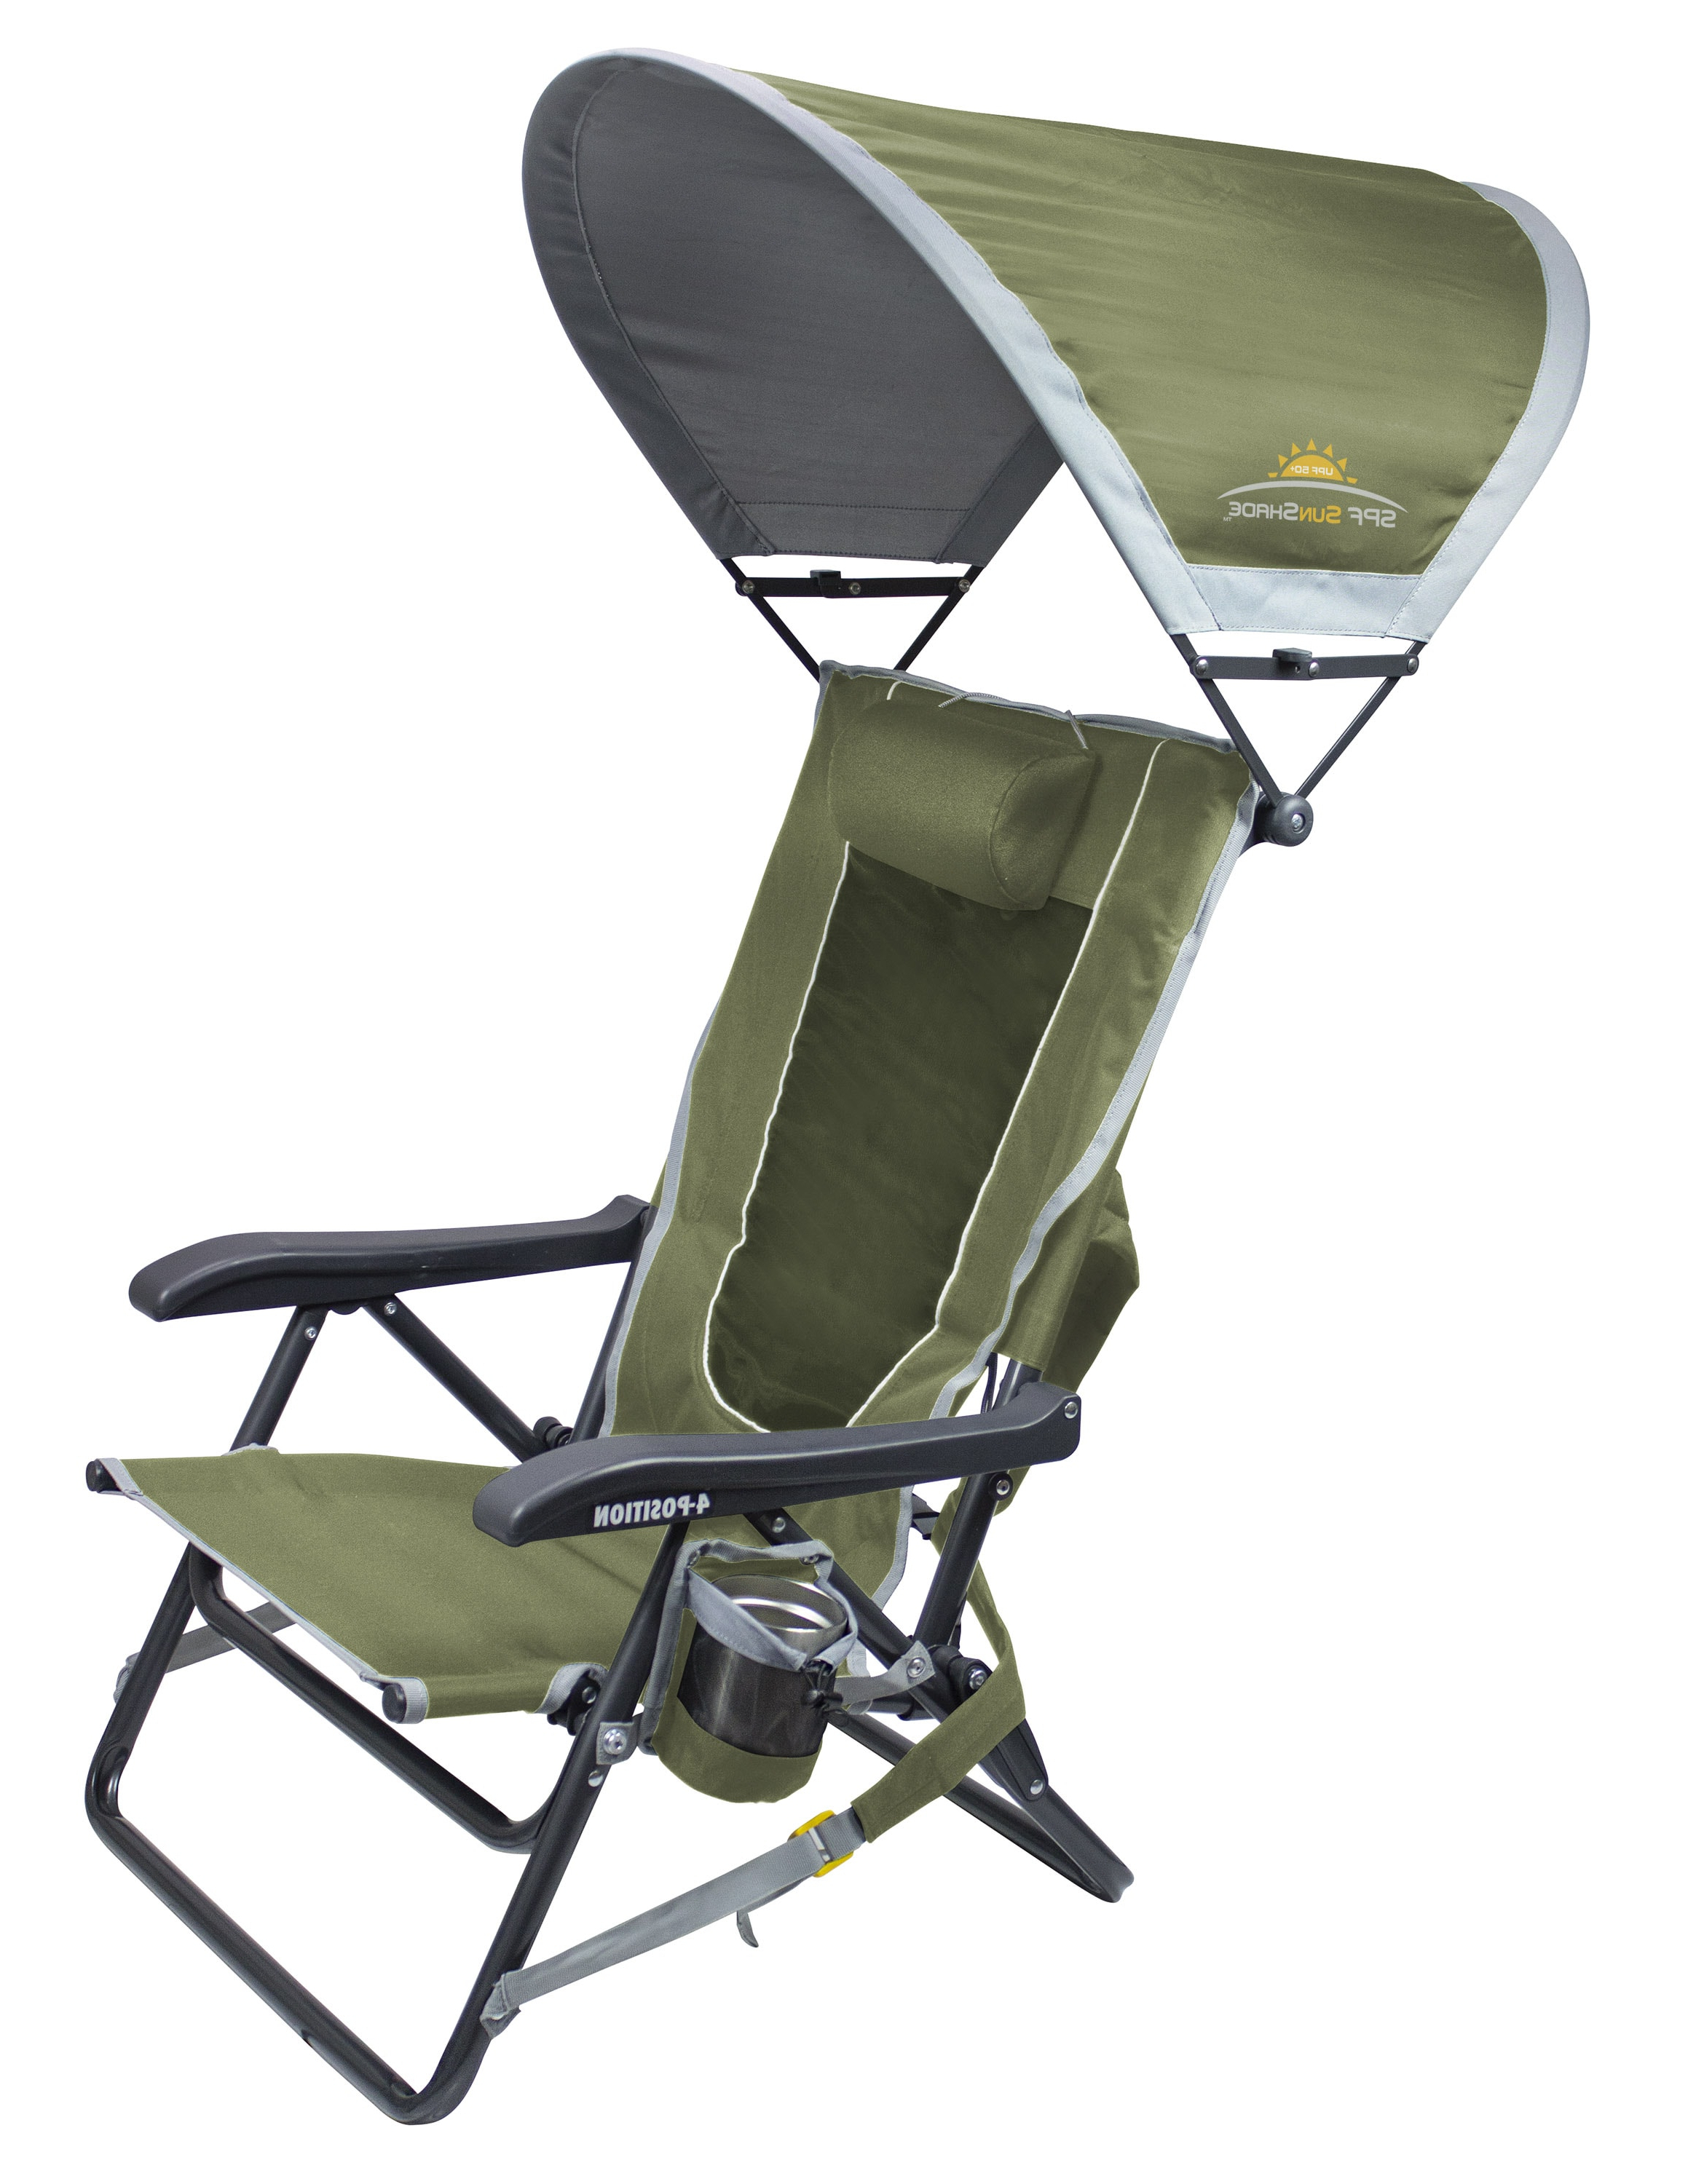 Oversized Extra Large Chairs With Canopy And Tray Regarding Latest Sunshade Backpack Event Chair™ (View 18 of 25)